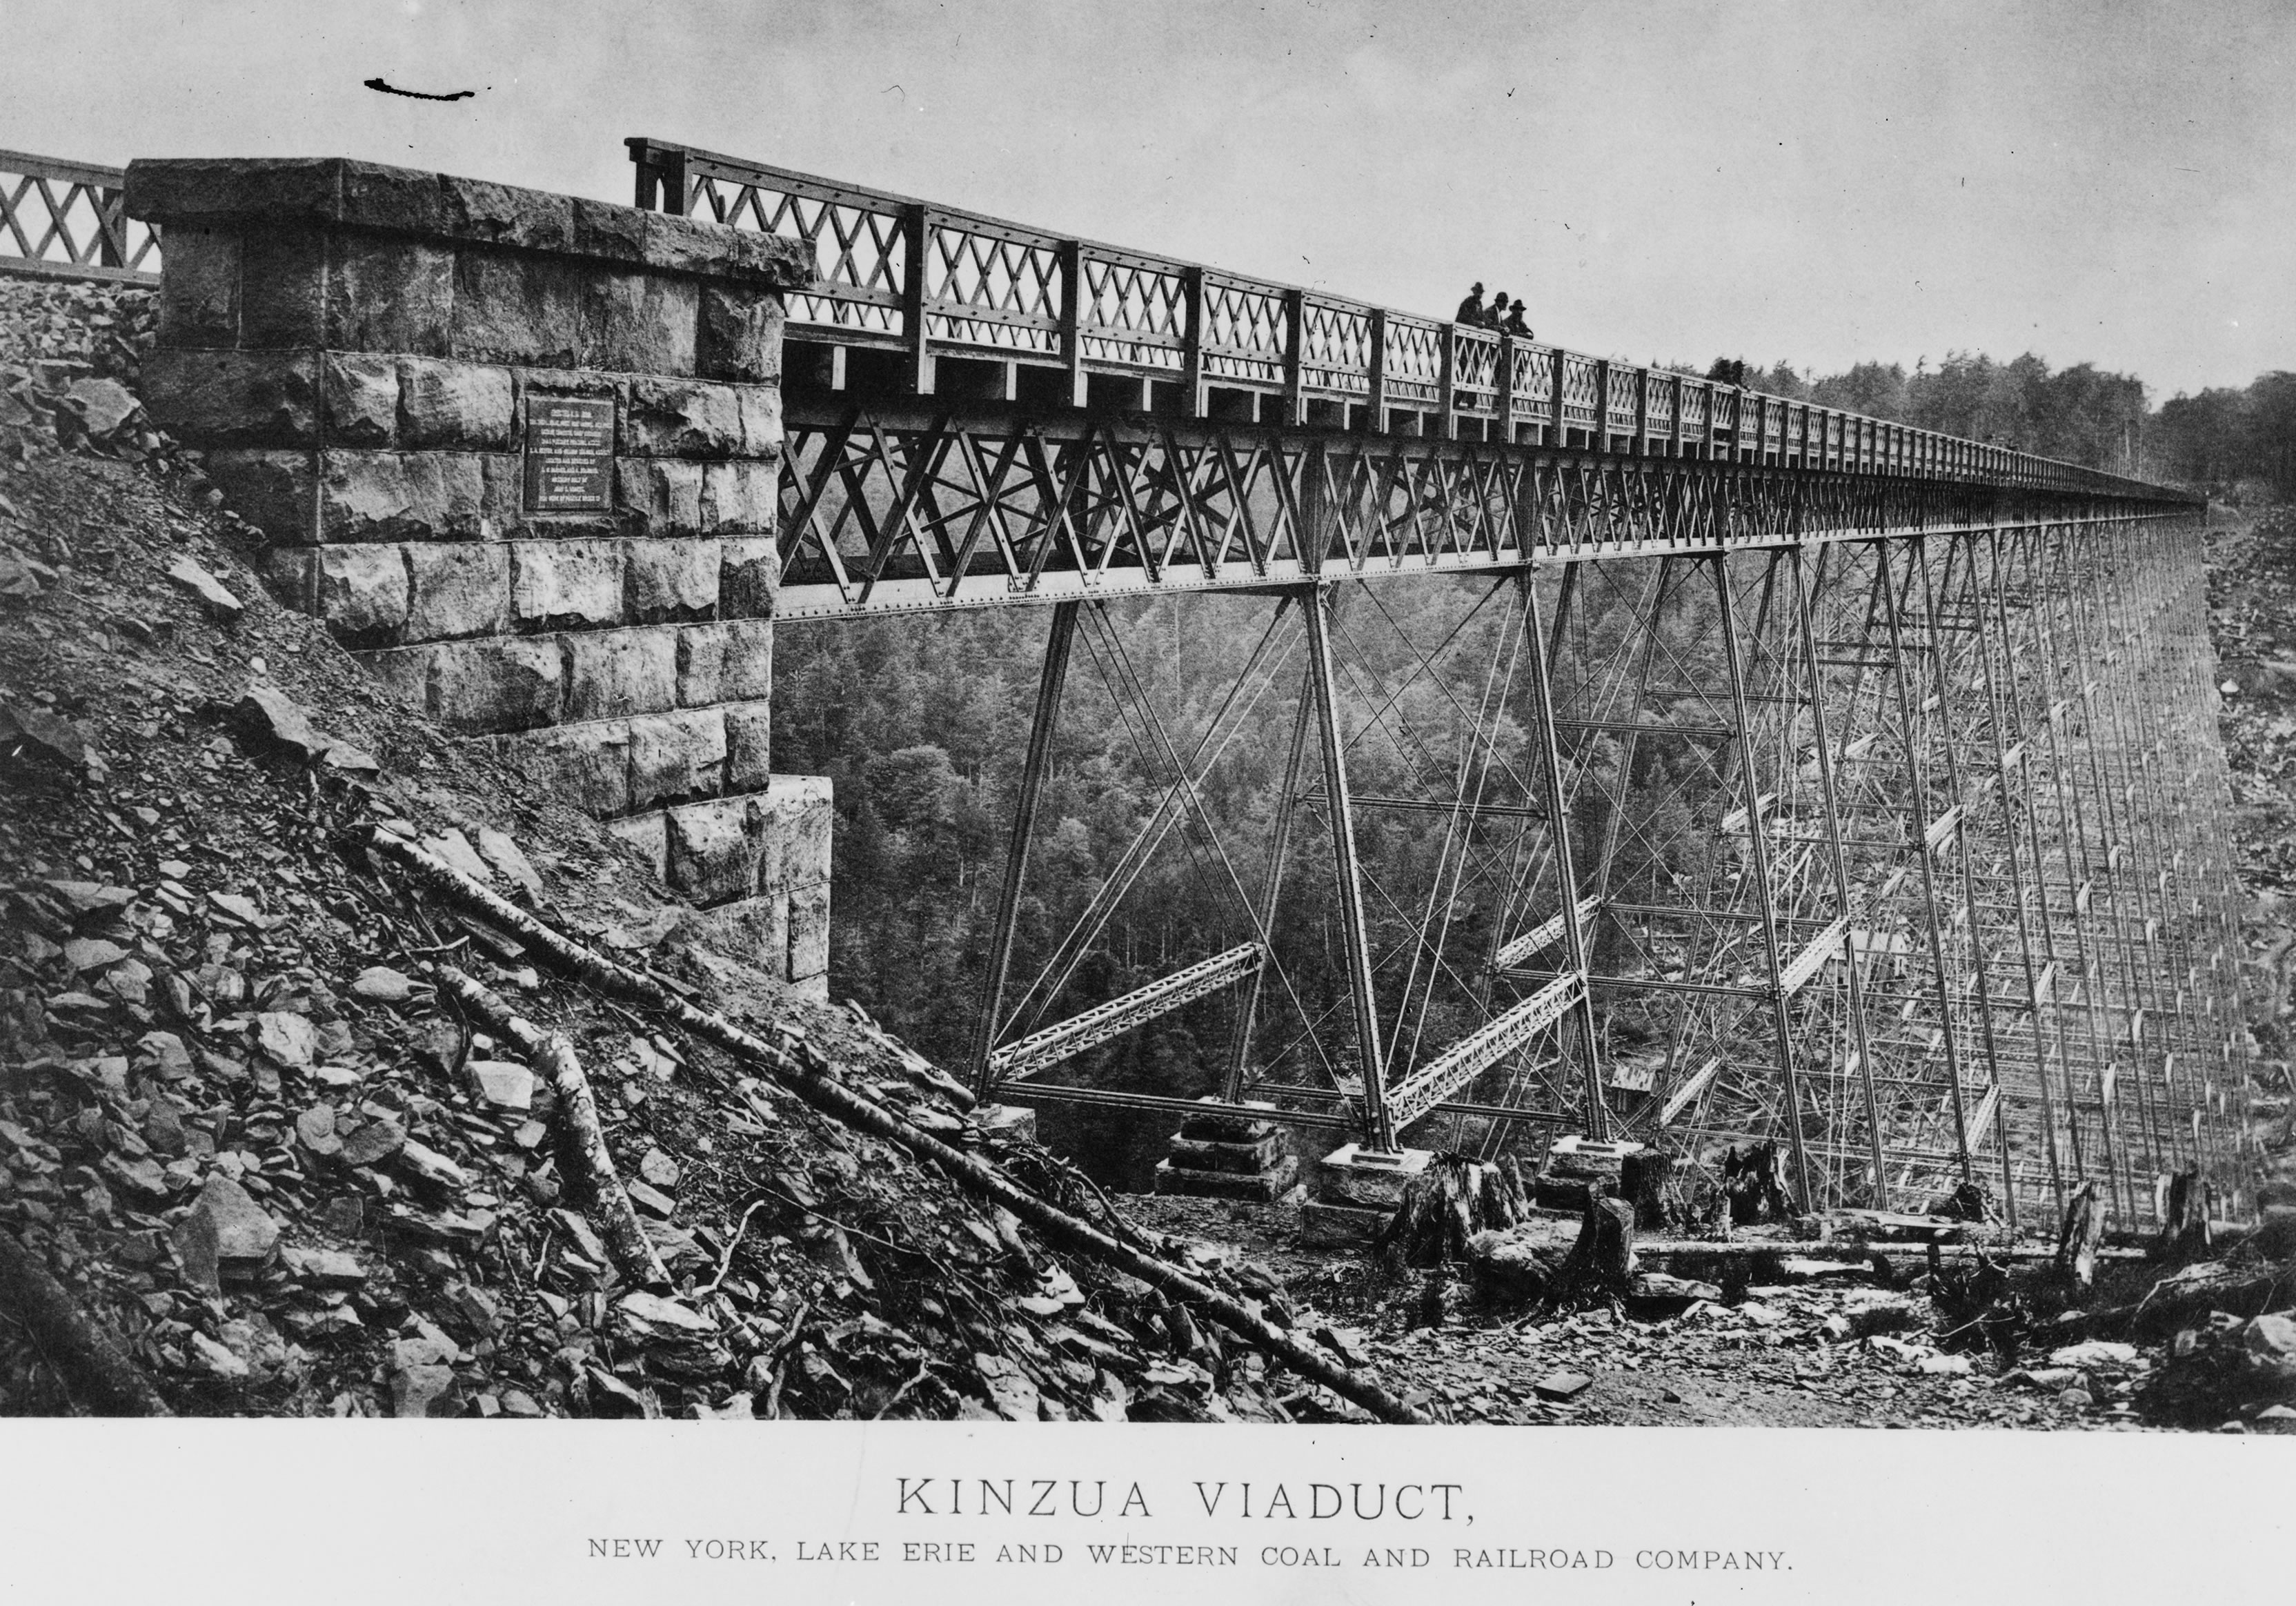 Photo of the Bridge from 1885